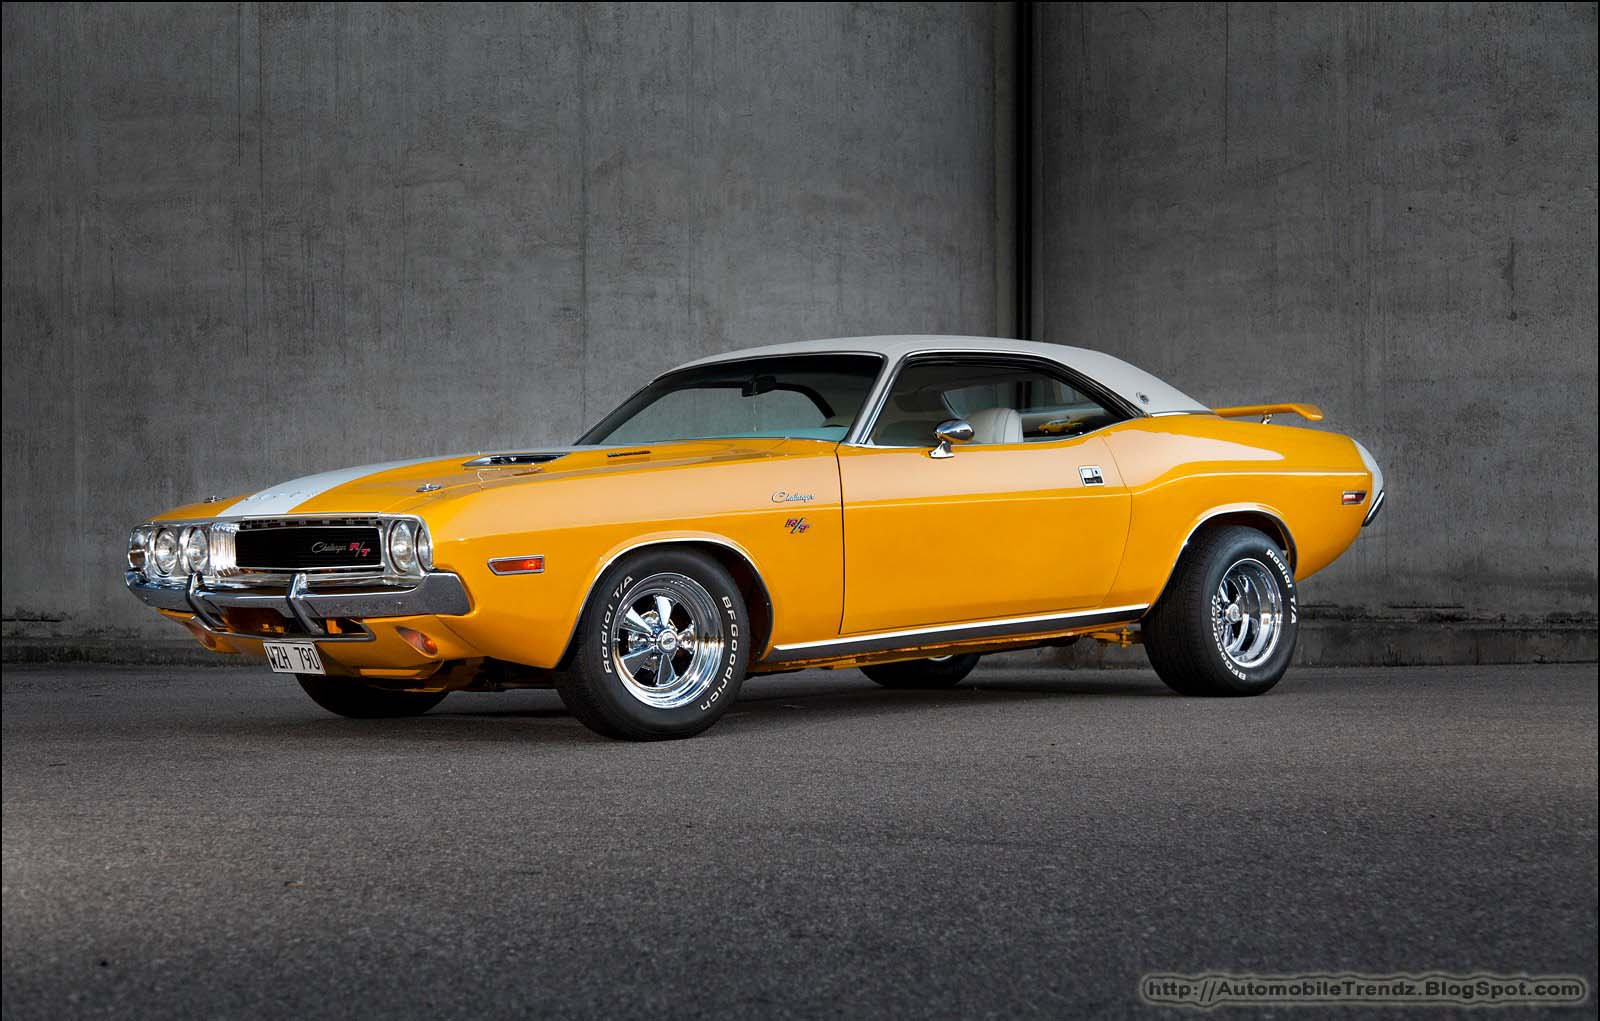 Dodge Challenger 1970 Wallpaper Automobile Trendz 1970 1974 Dodge Challenger Rt Wallpaper